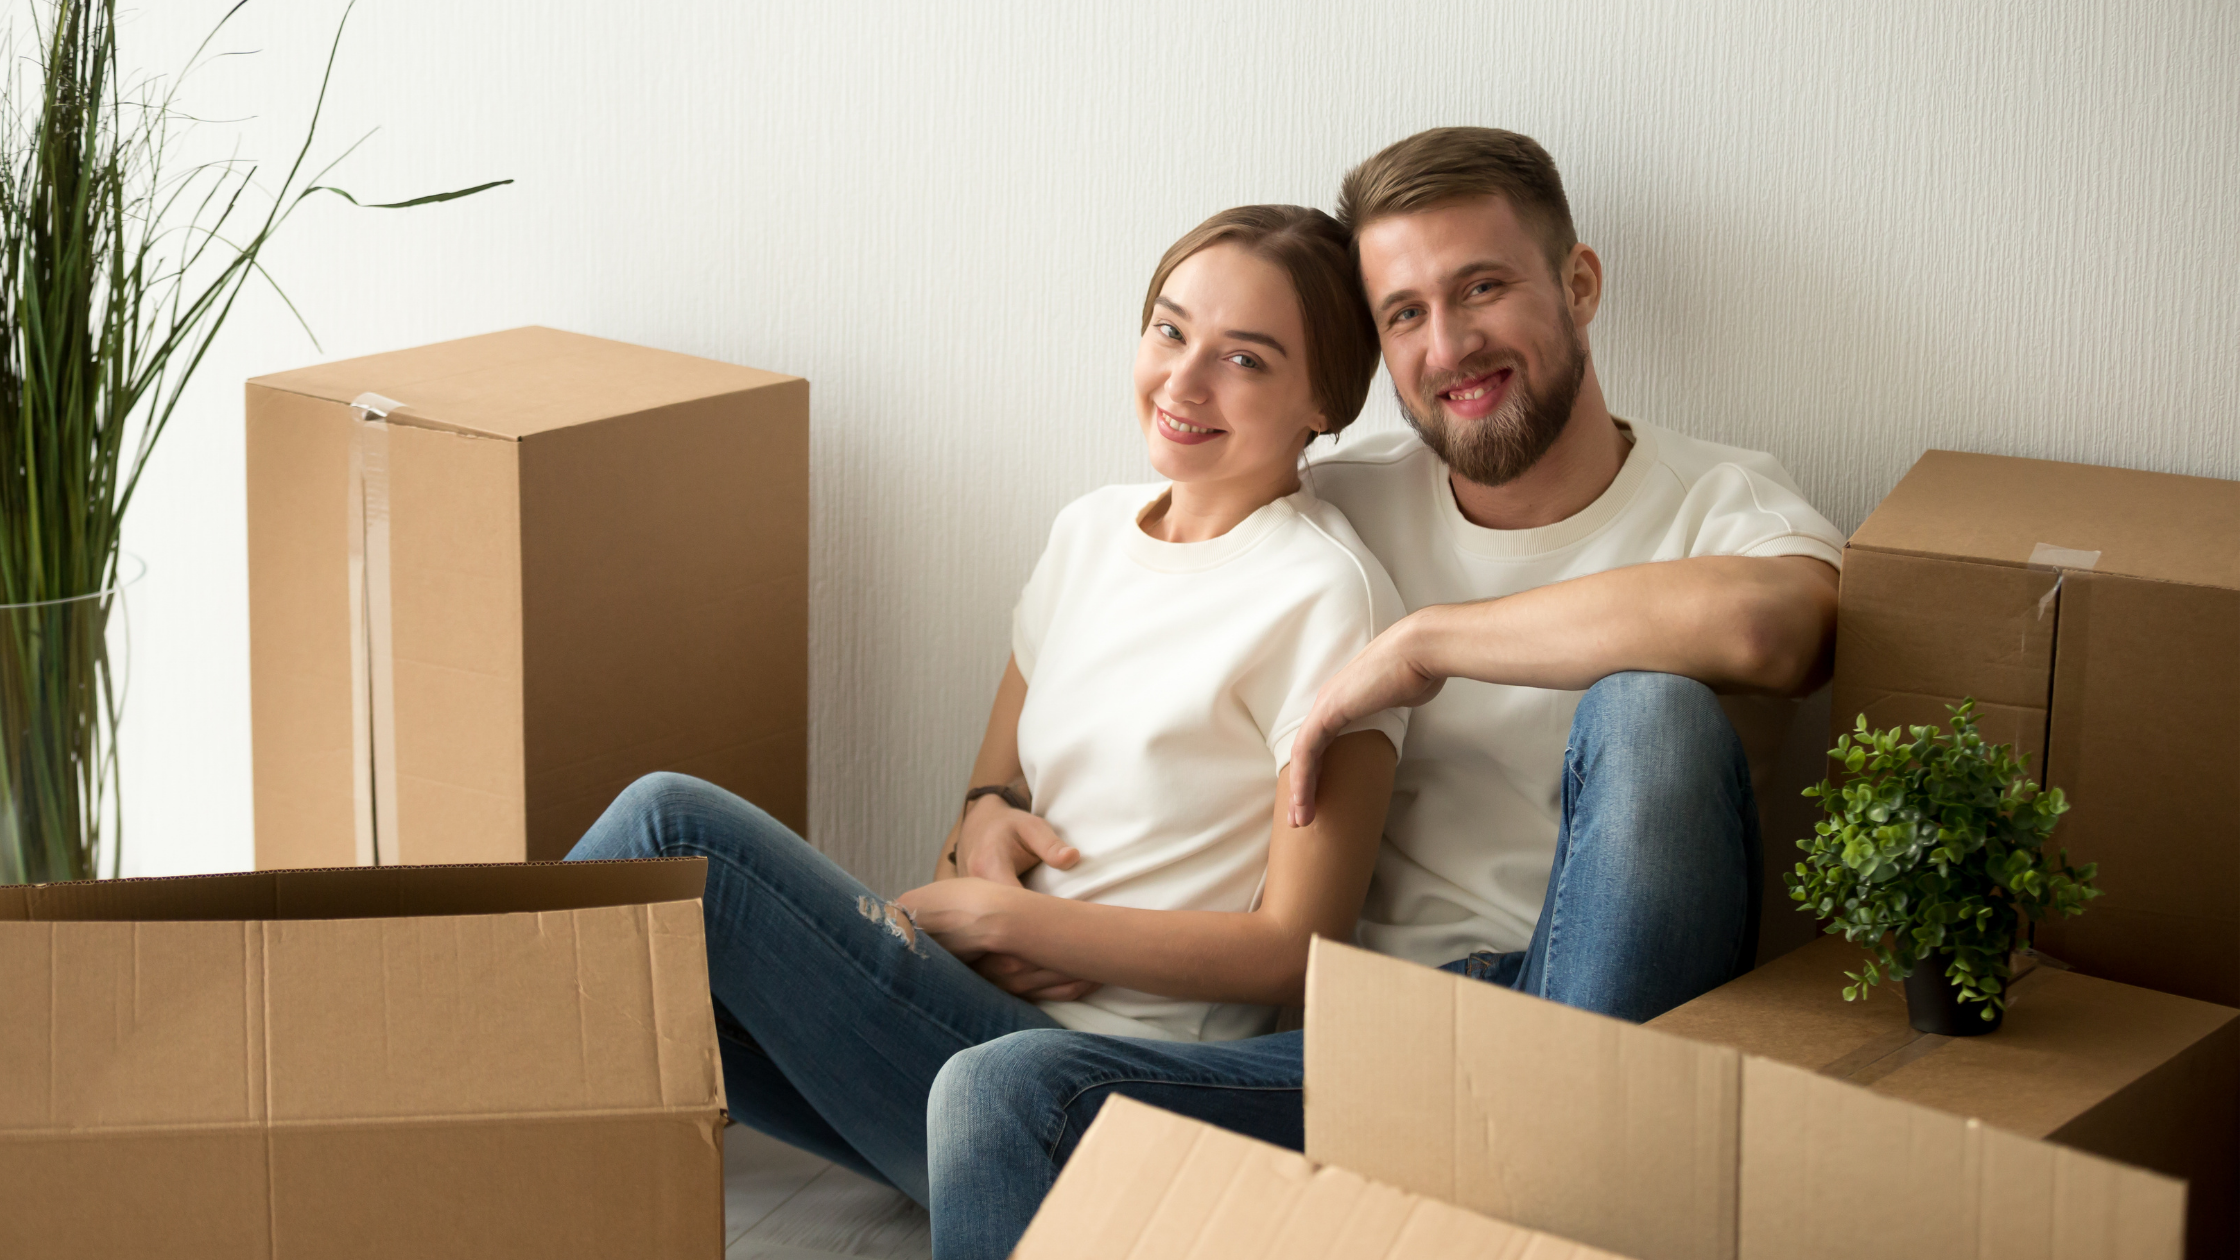 Six Upgrades Millennial Buyers Pay More For and One Exception